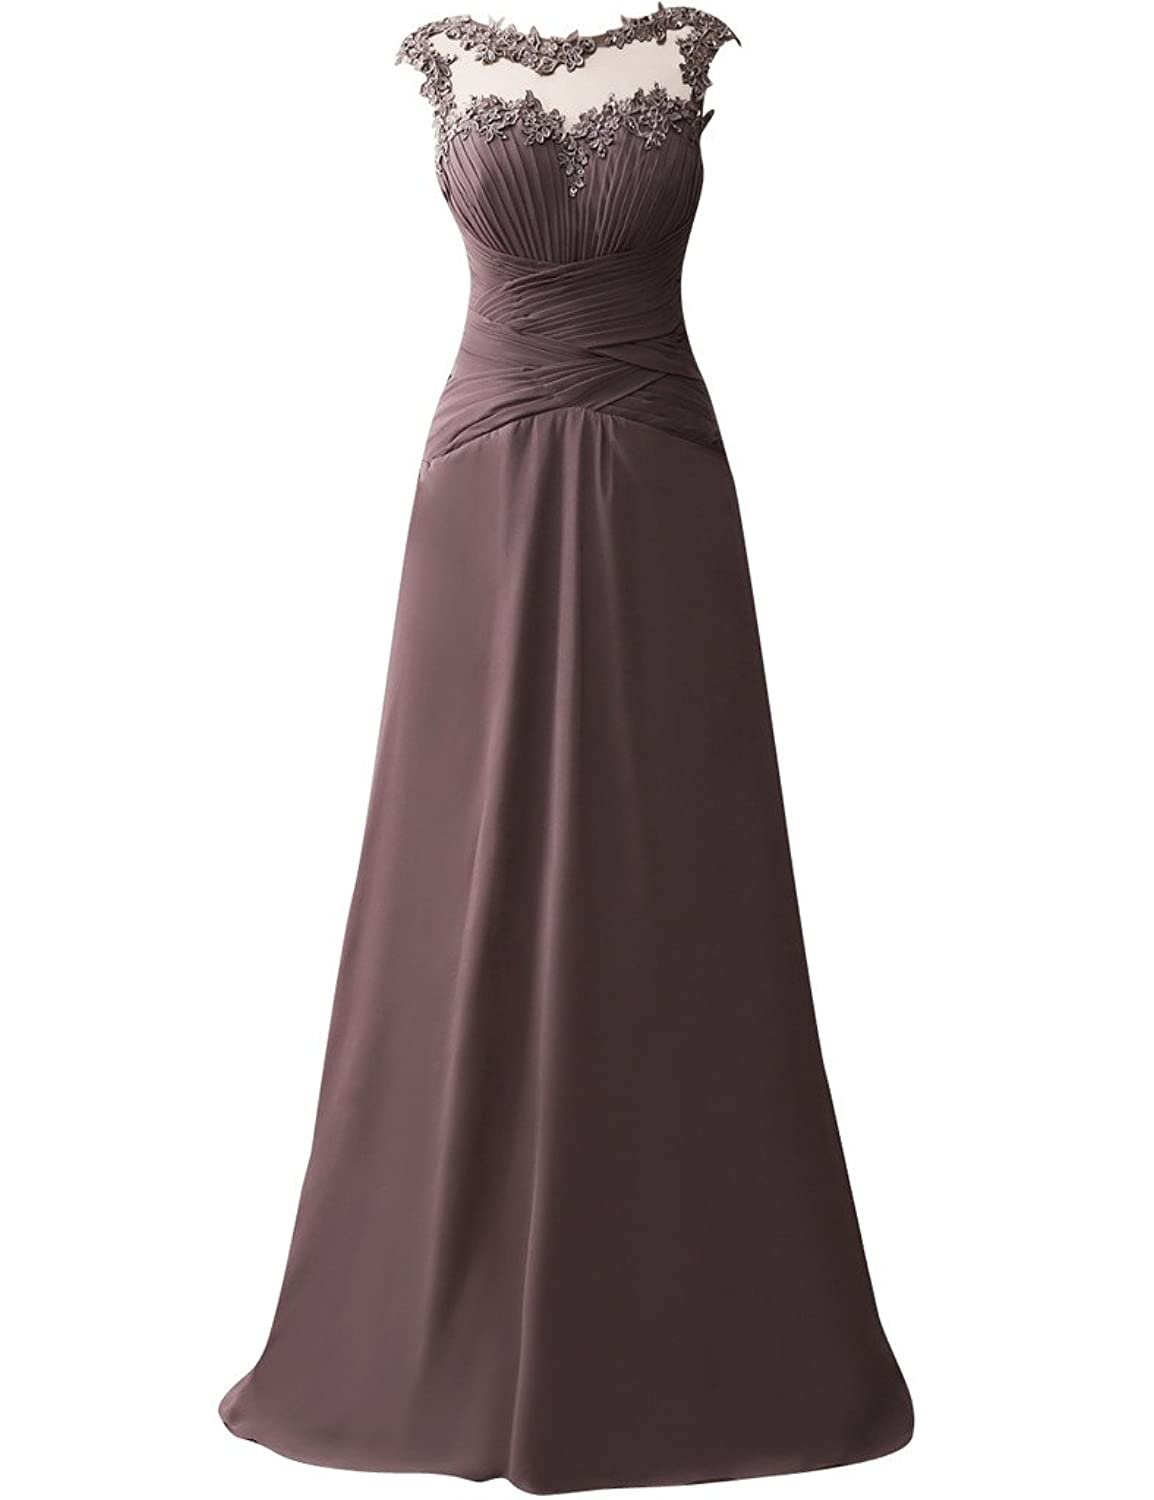 JAEDEN Long Evening Dresses Chiffon Ruched Prom Party Gown Open Back